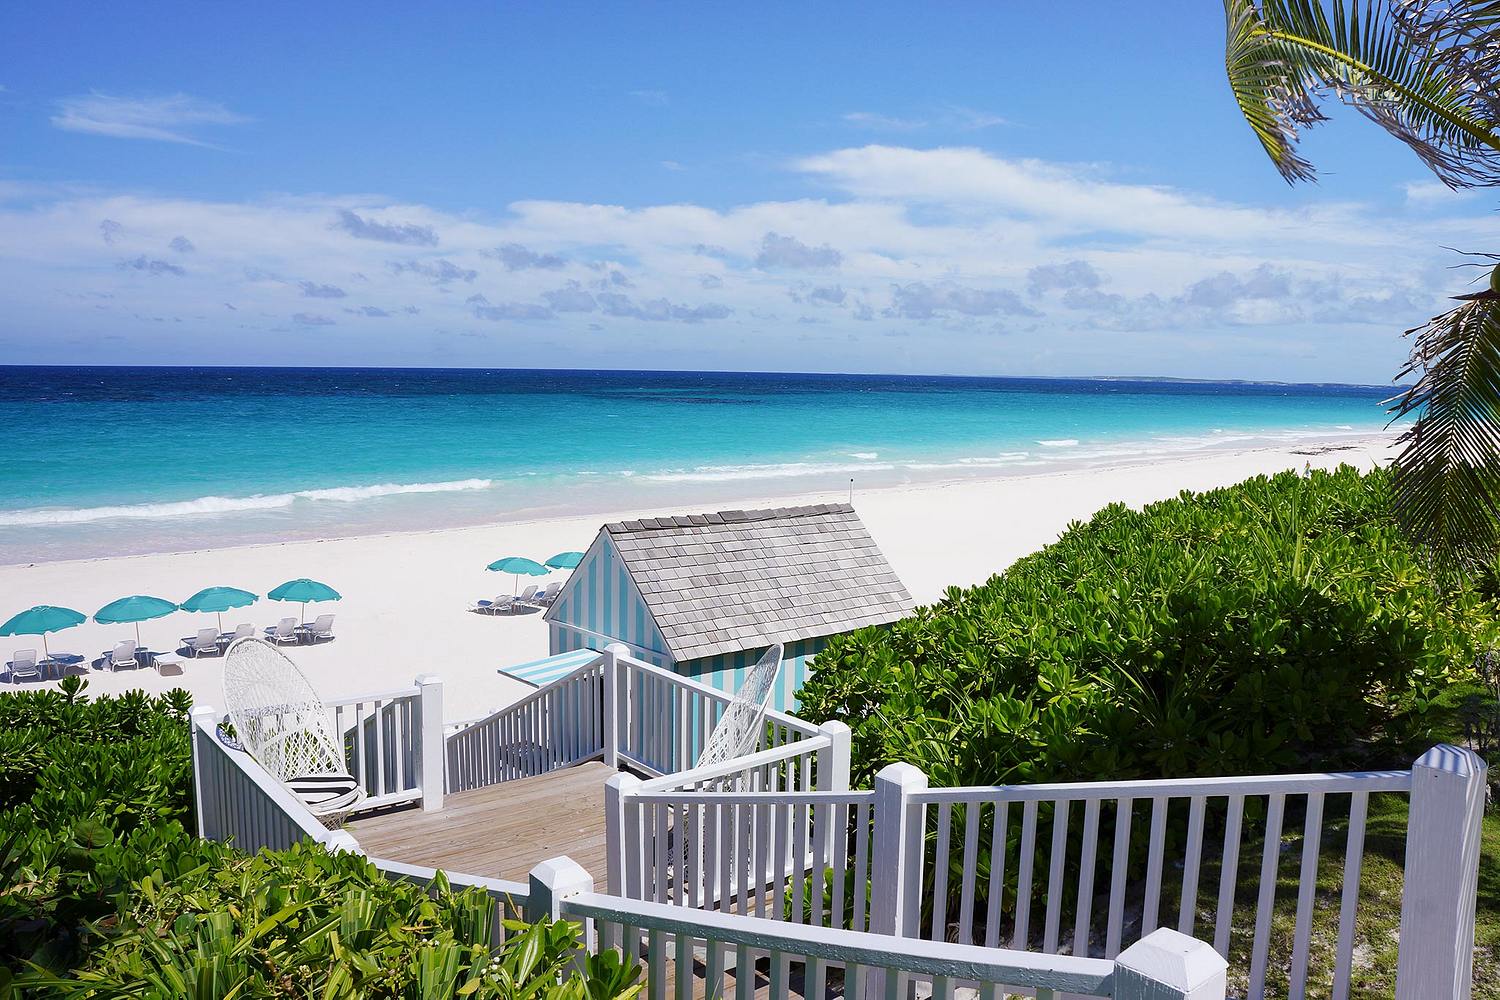 The Dunmore Beach Hotel, Harbour Island, Bahamas